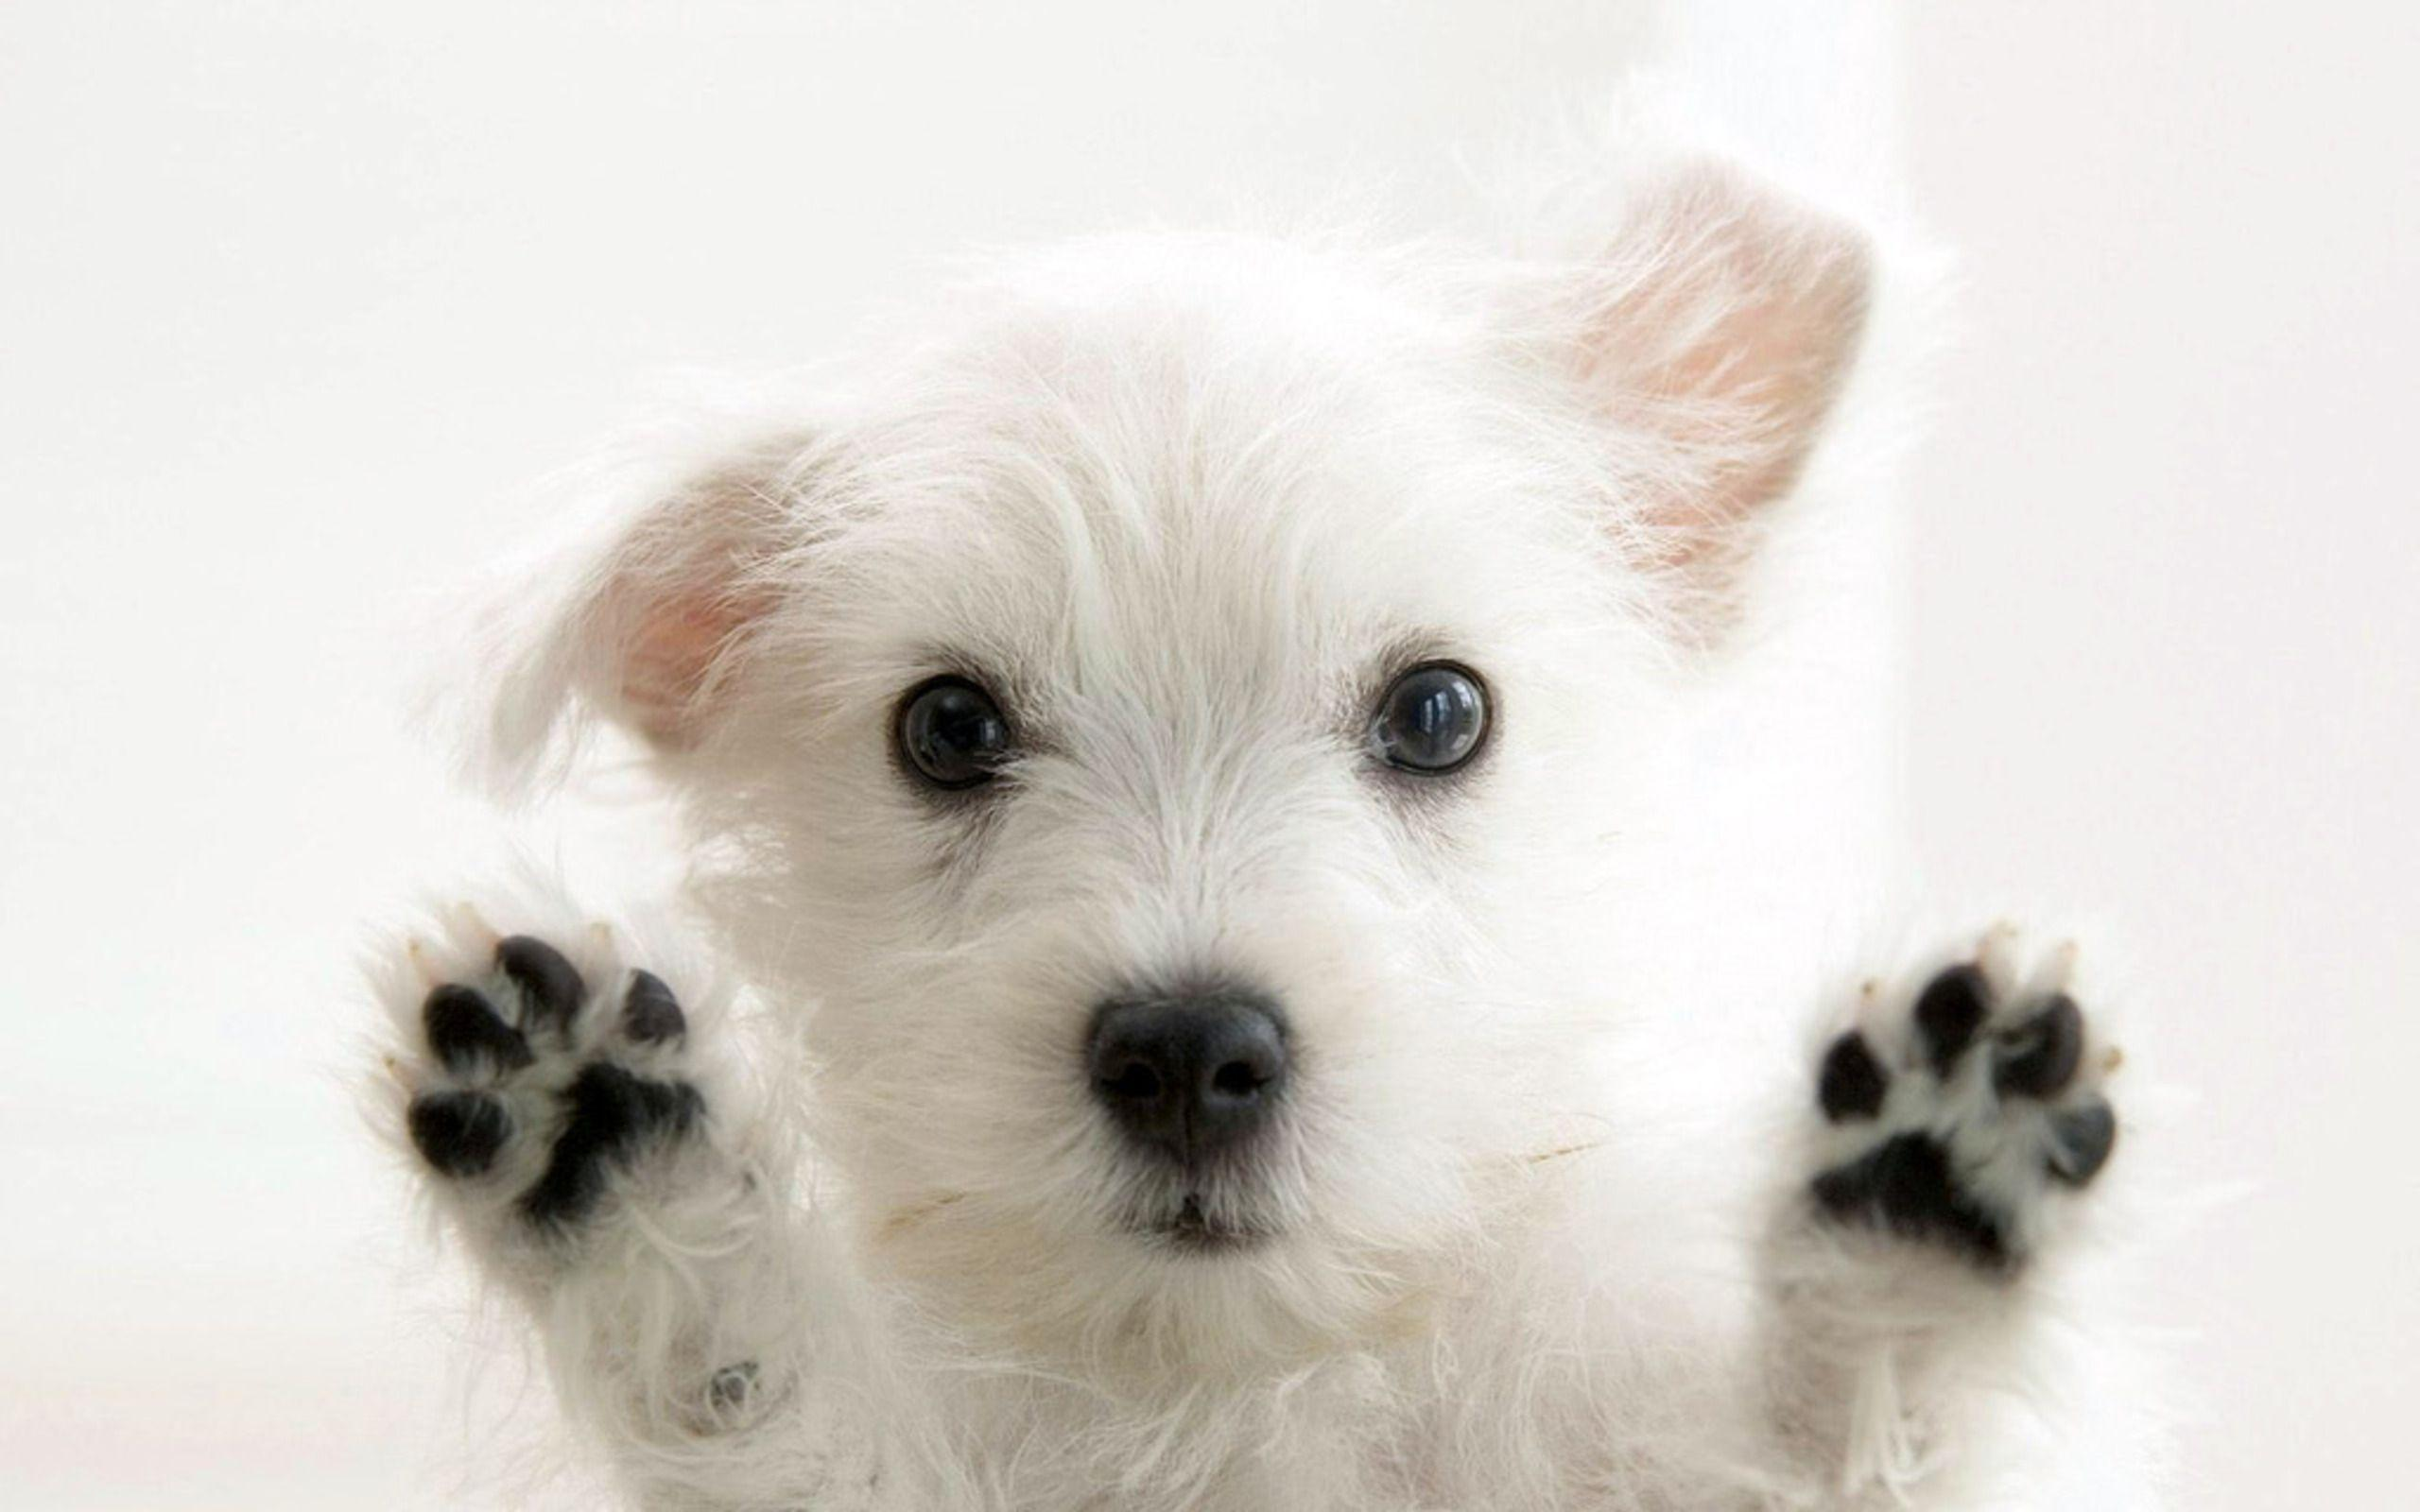 Funny White Cute Puppies, Animals Wallpaper, hd phone wallpapers ...